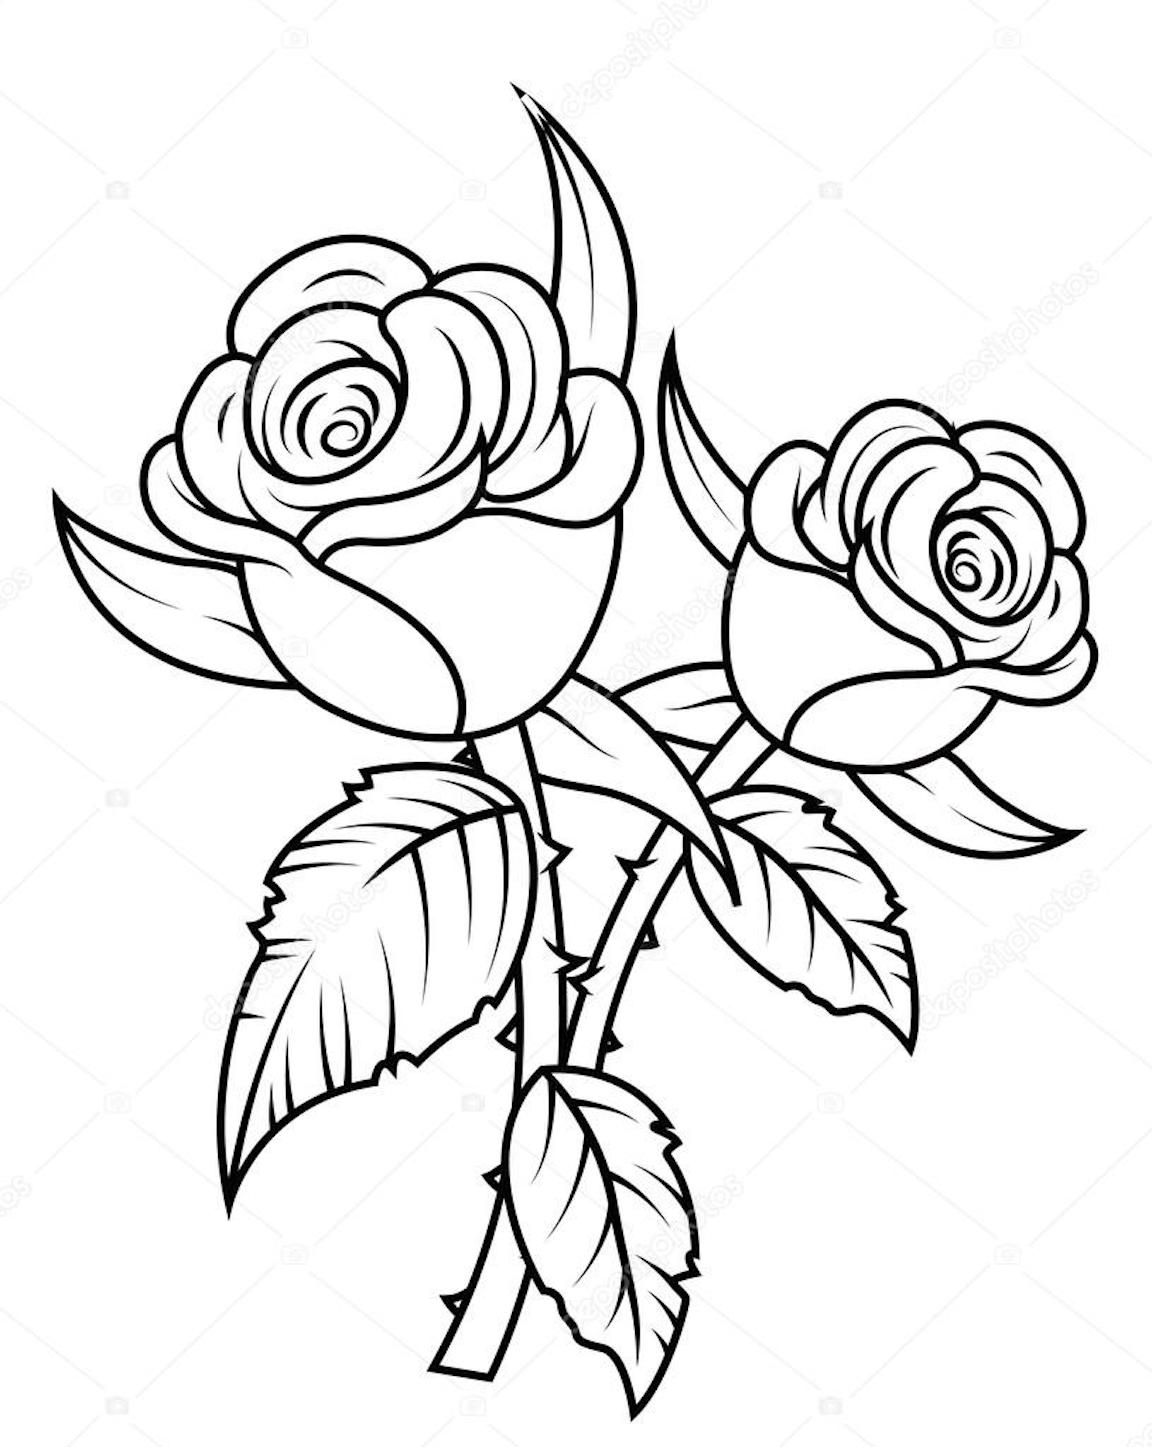 coloring flower clipart black and white white rose coloring download white rose coloring for free black white flower coloring clipart and